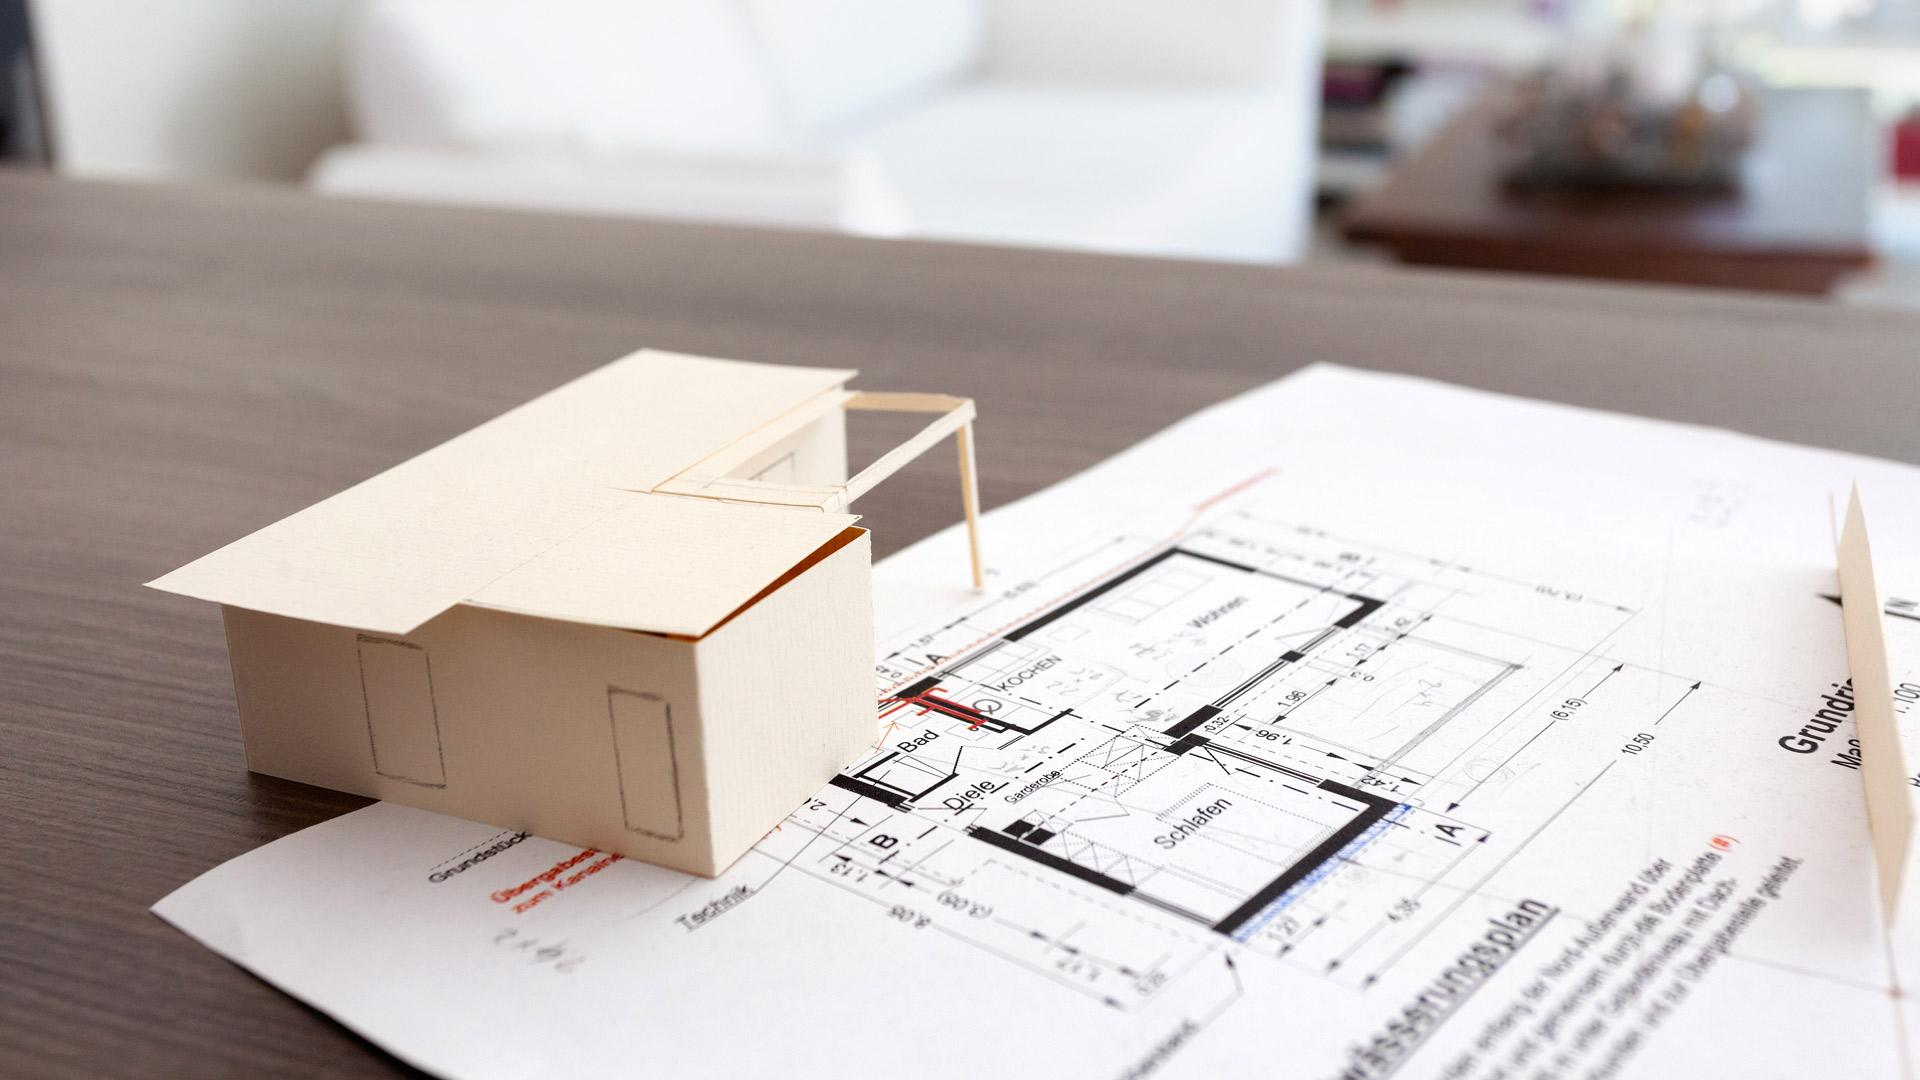 Plan and model FlyingSpace mini house